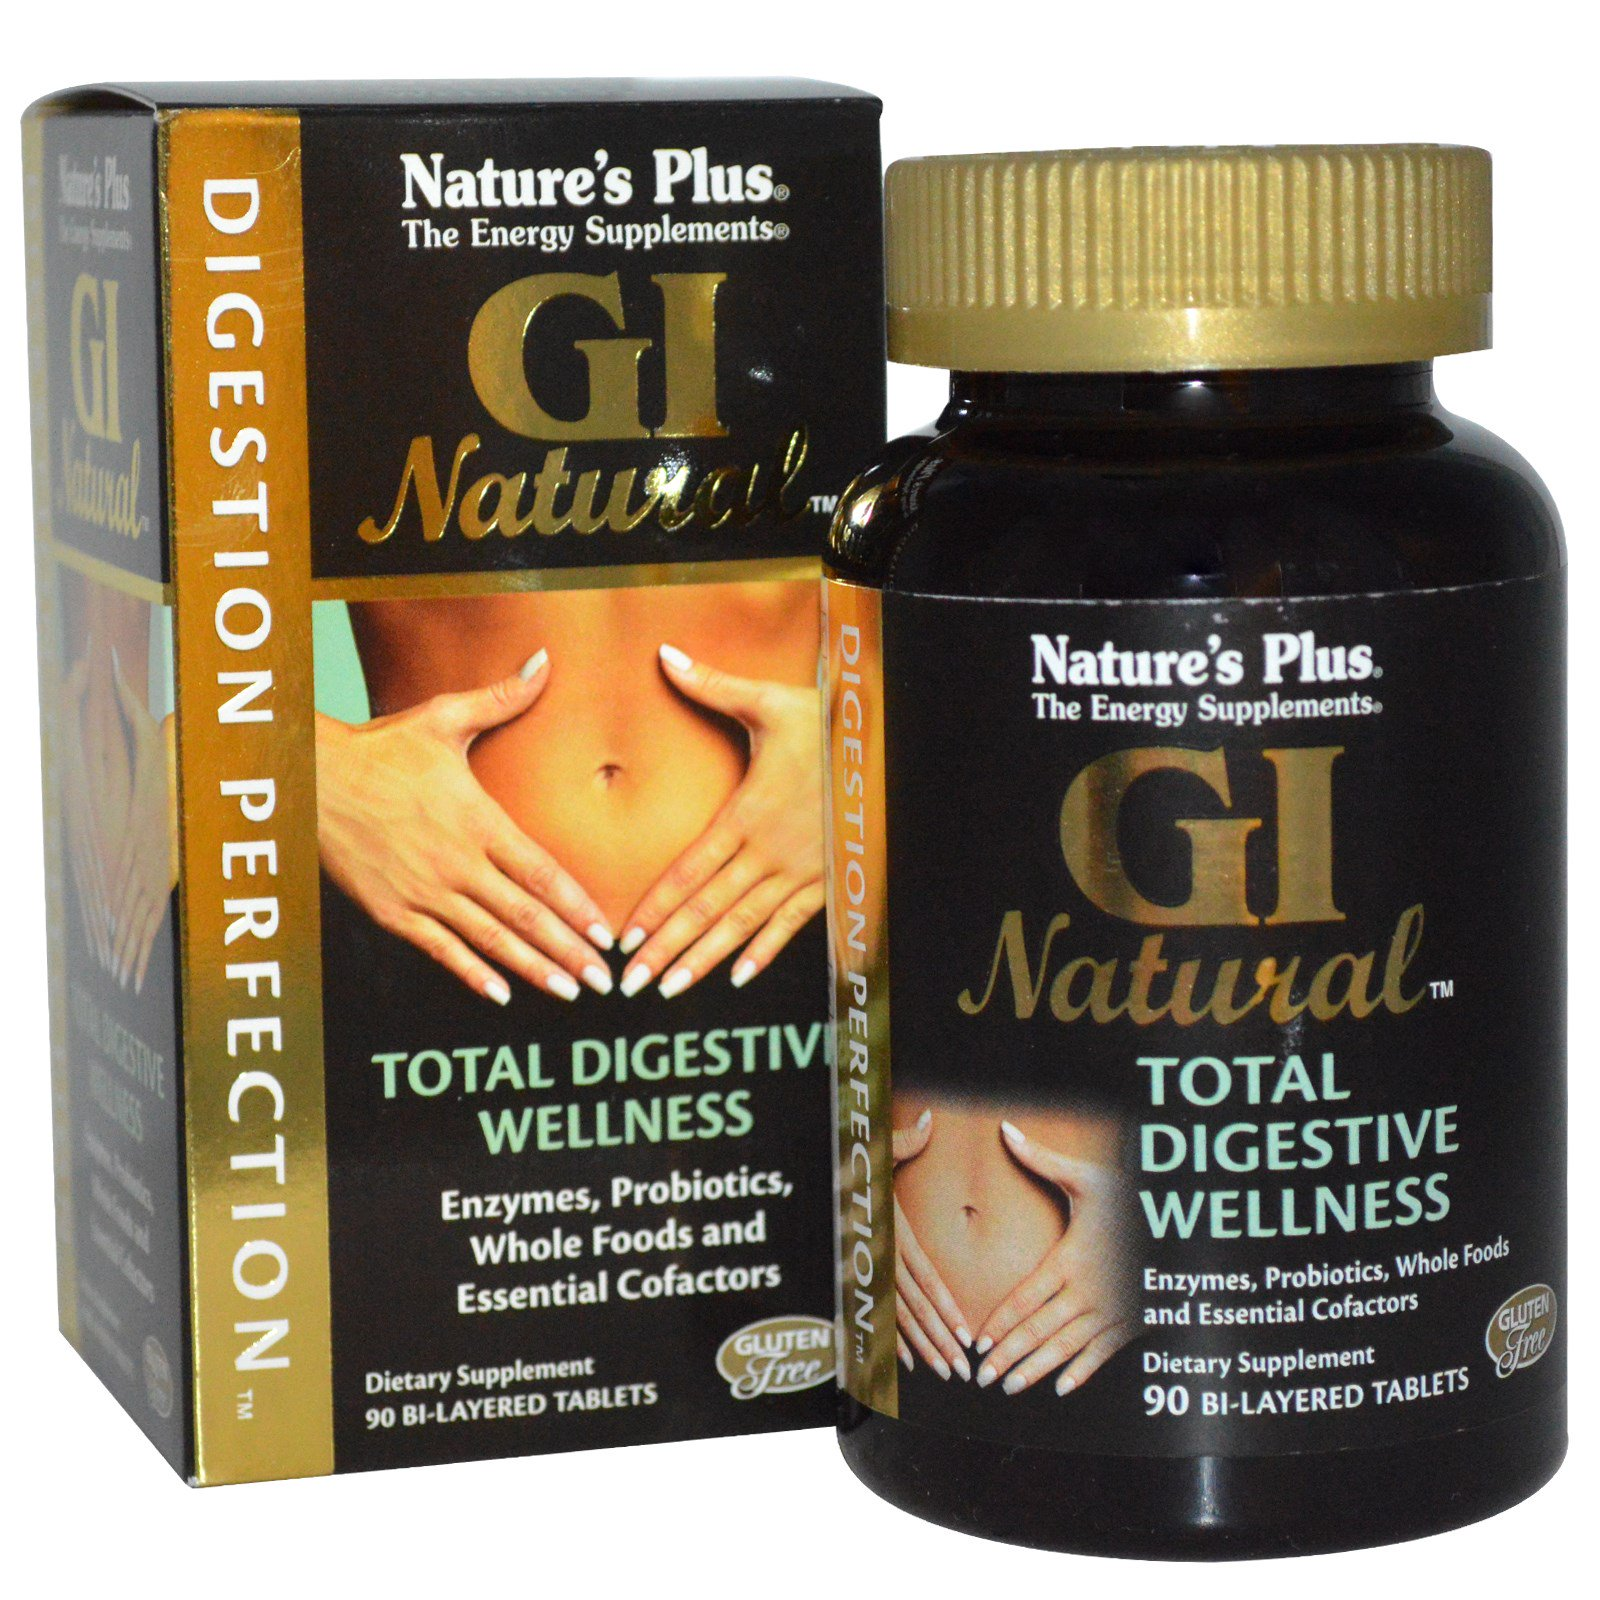 Image of Digestion Perfection, GI Natural (90 Bi-Layered Tablets) - Nature's Plus 0097467043862